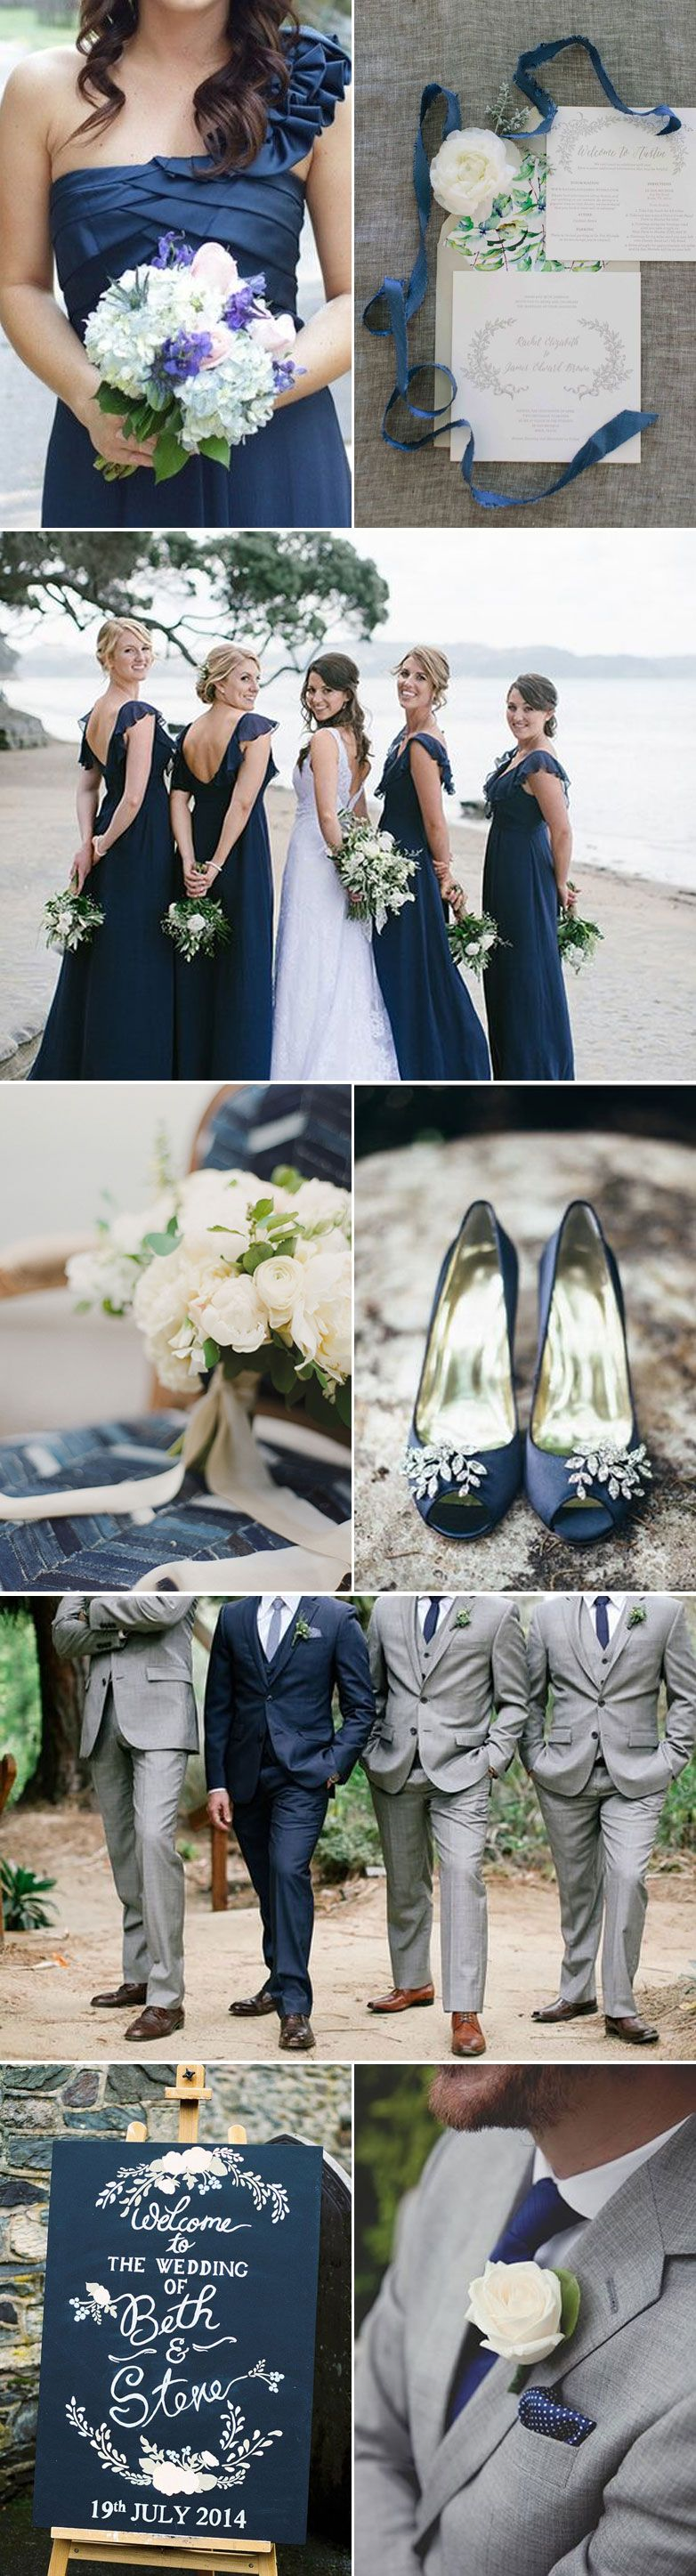 Indigo and silver wedding ideas for brides and grooms pomysły na